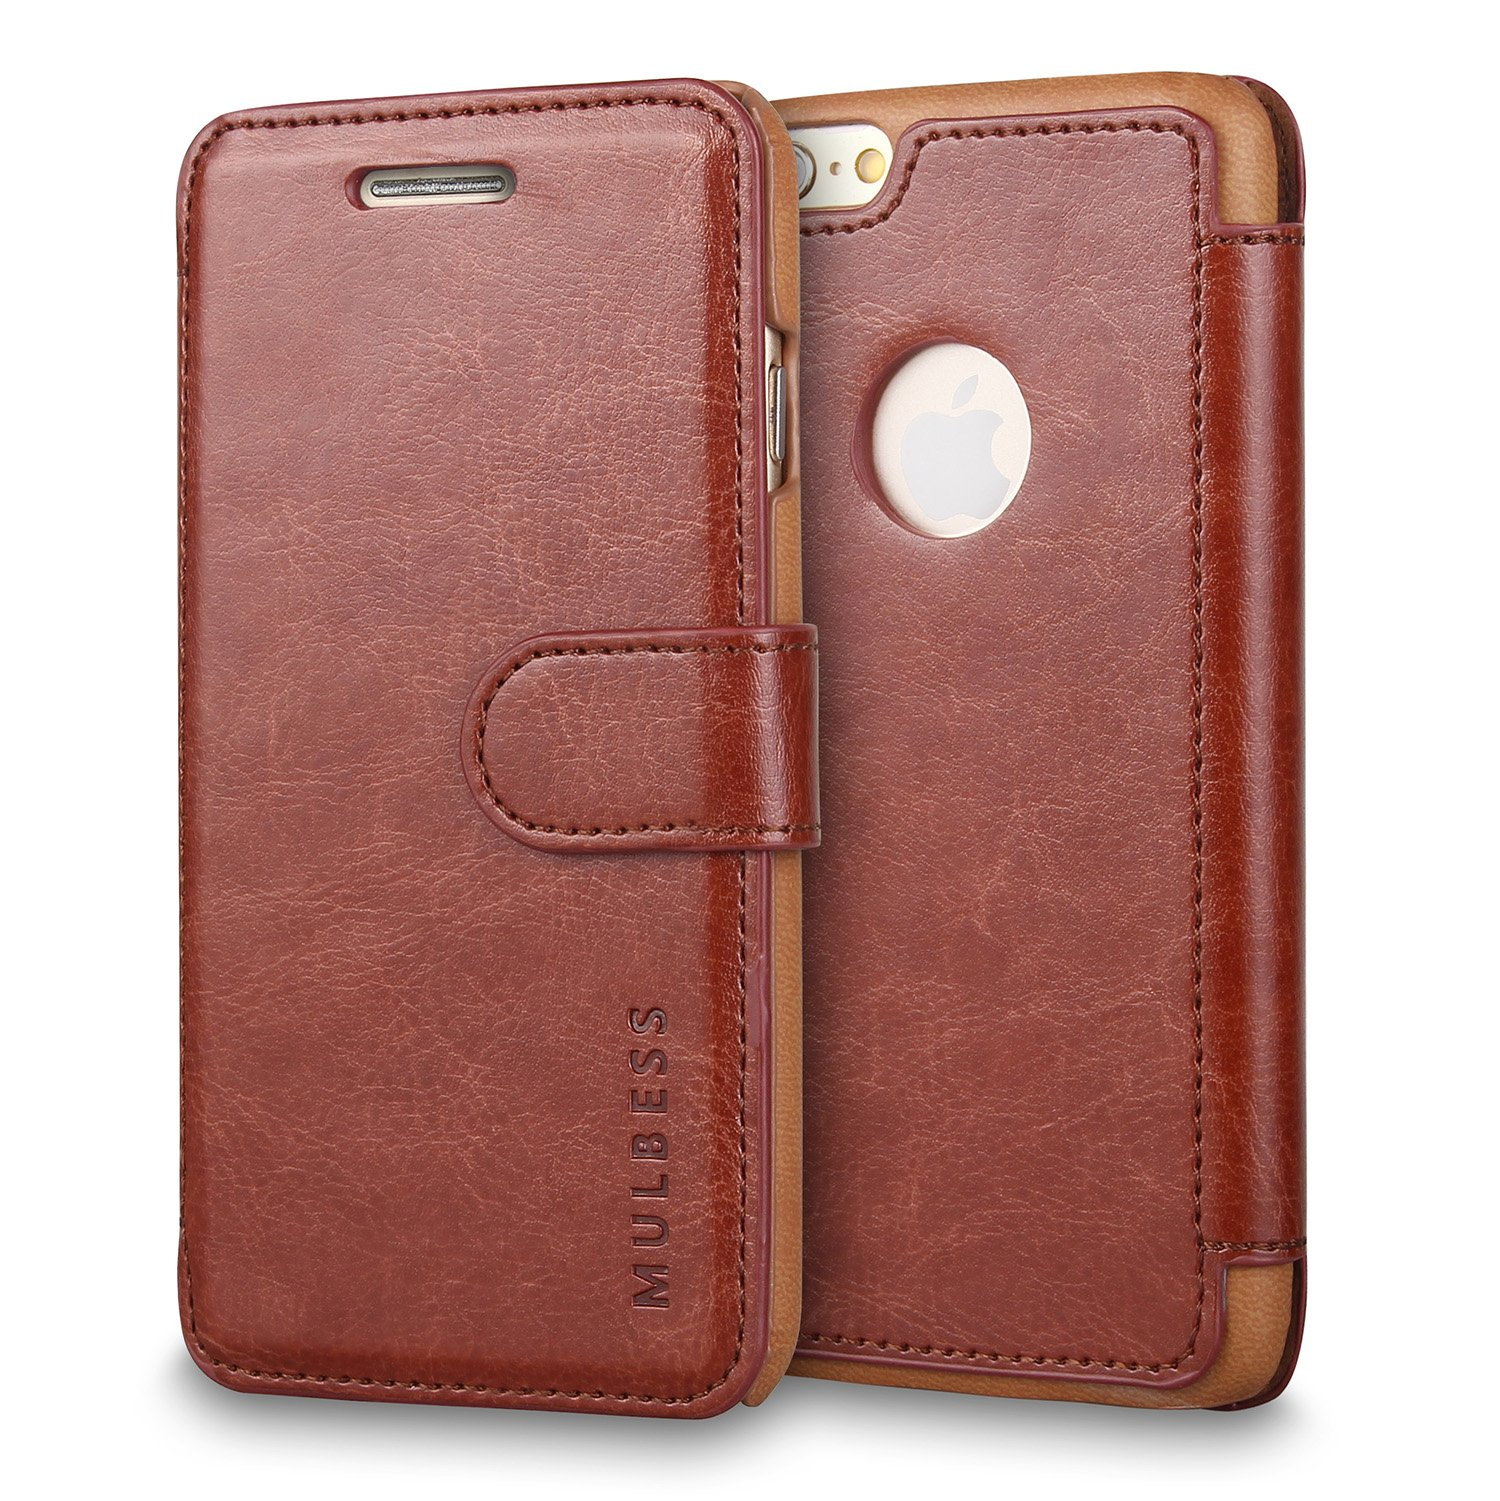 iPhone Wallet Mulbess Layered Vintage